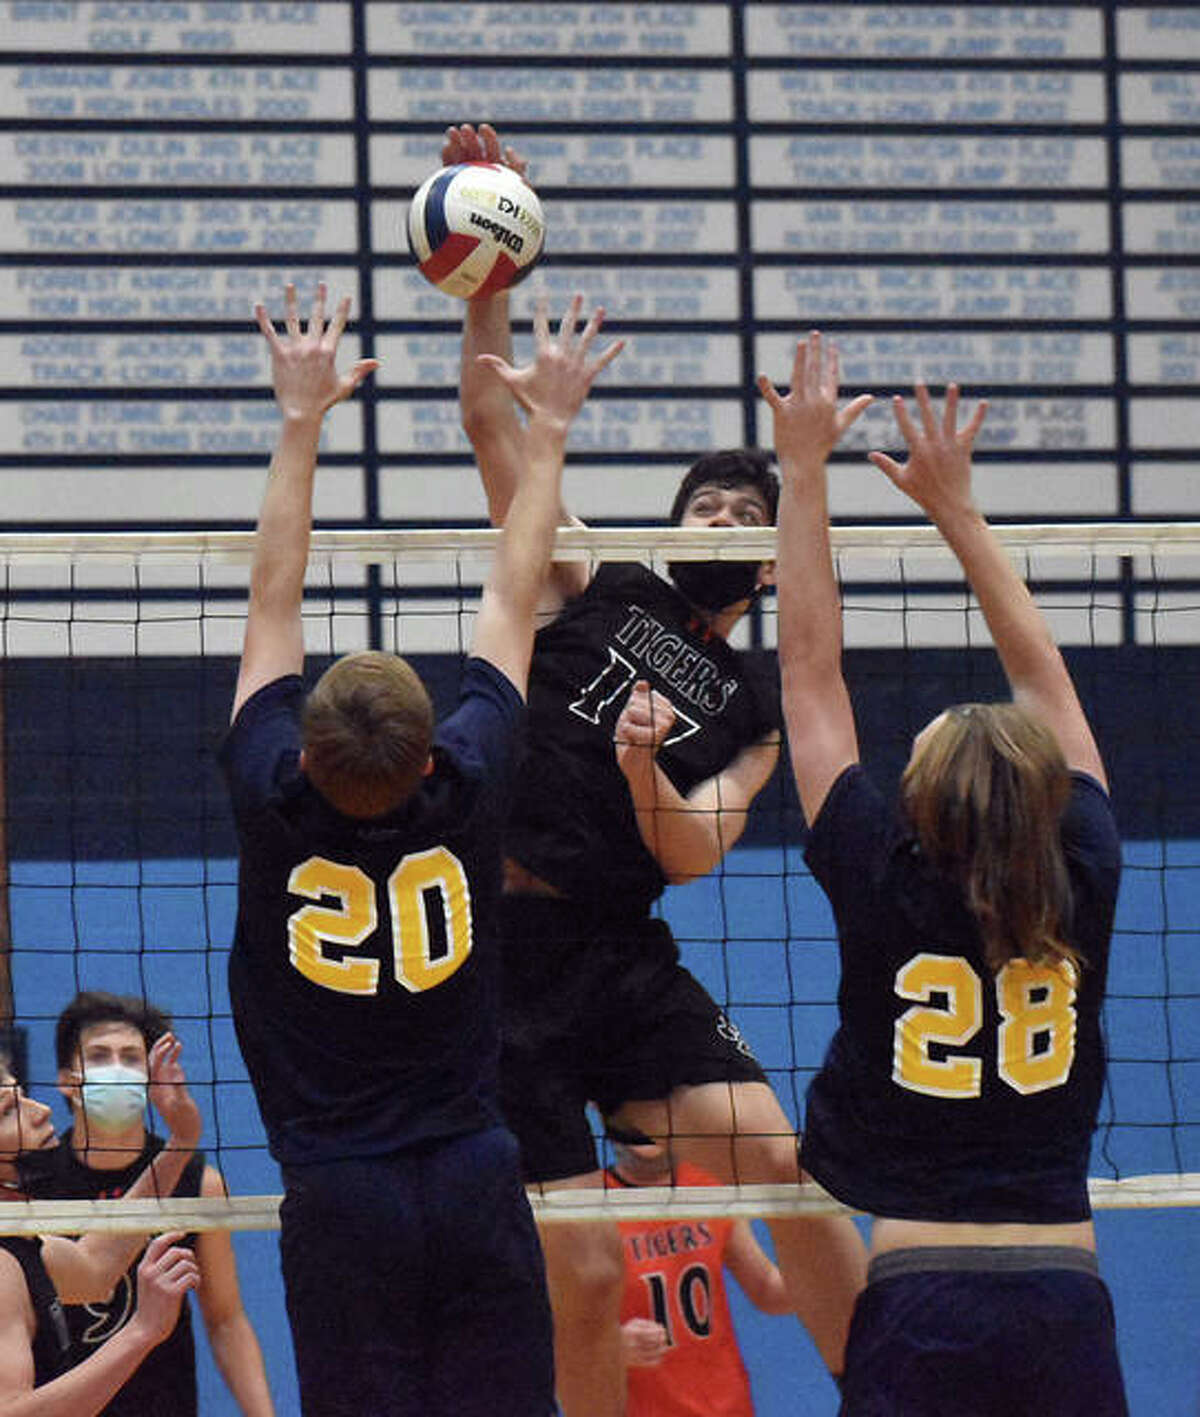 Edwardsville's John Kreke goes up for a kill attempt between two O'Fallon defenders on Saturday in a sectional semifinal at Belleville East in Belleville.